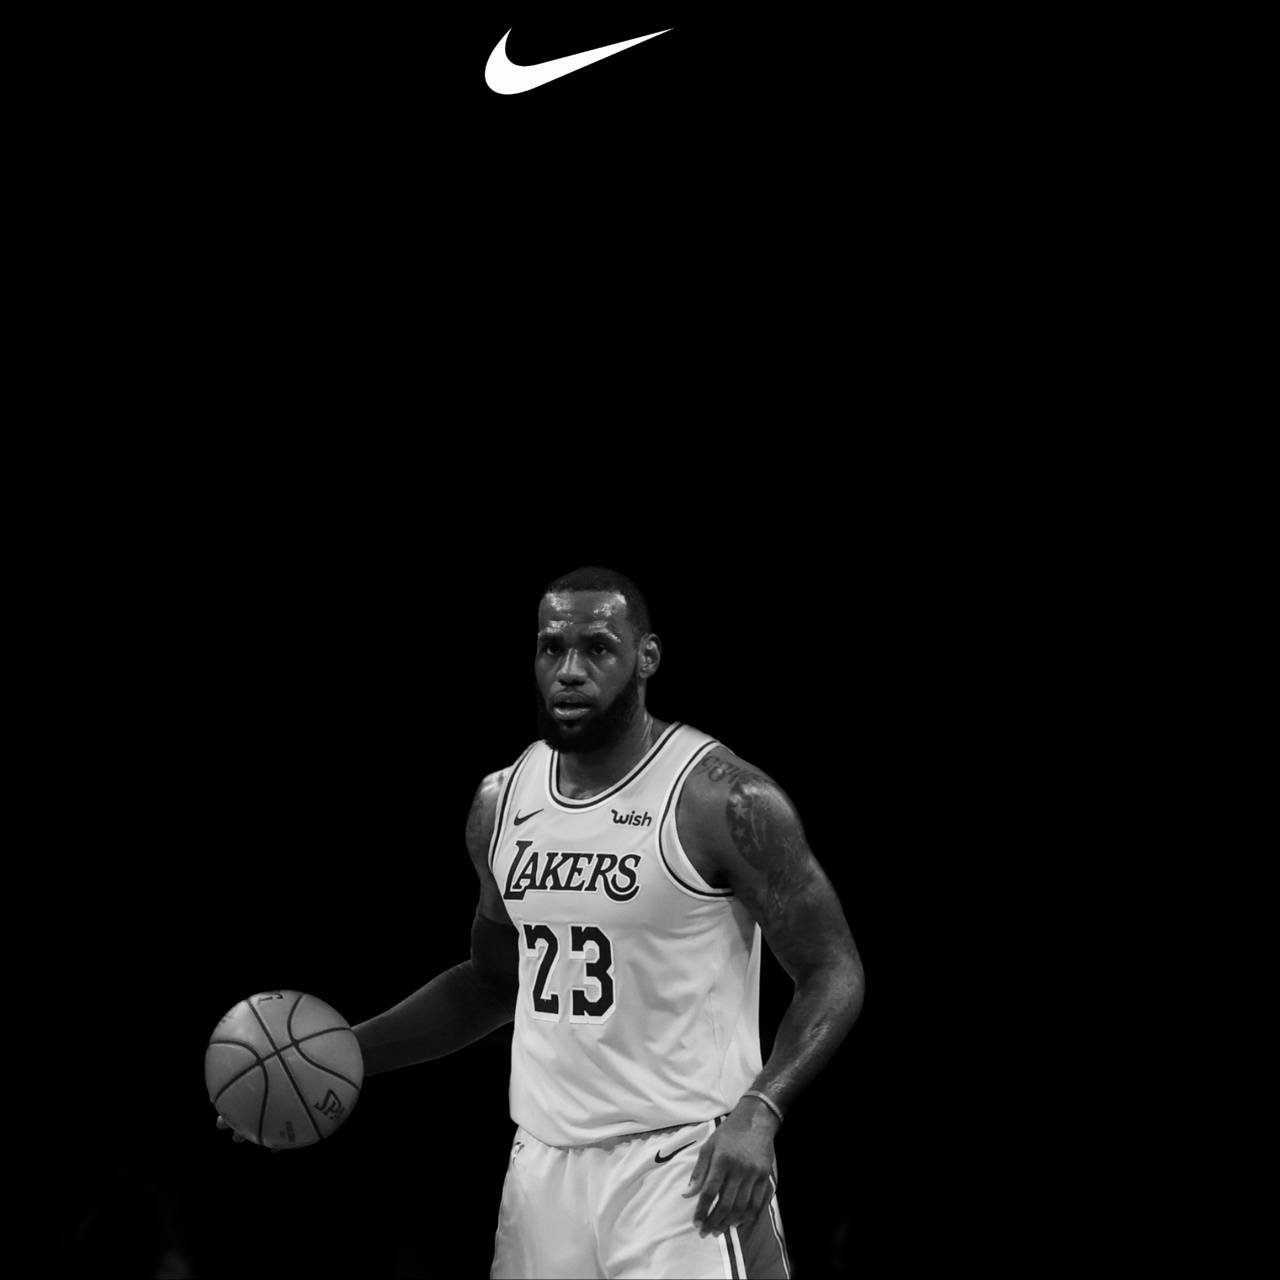 Lebron James Wallpaper Iphone: Lebron James Wallpaper By Emryil1905